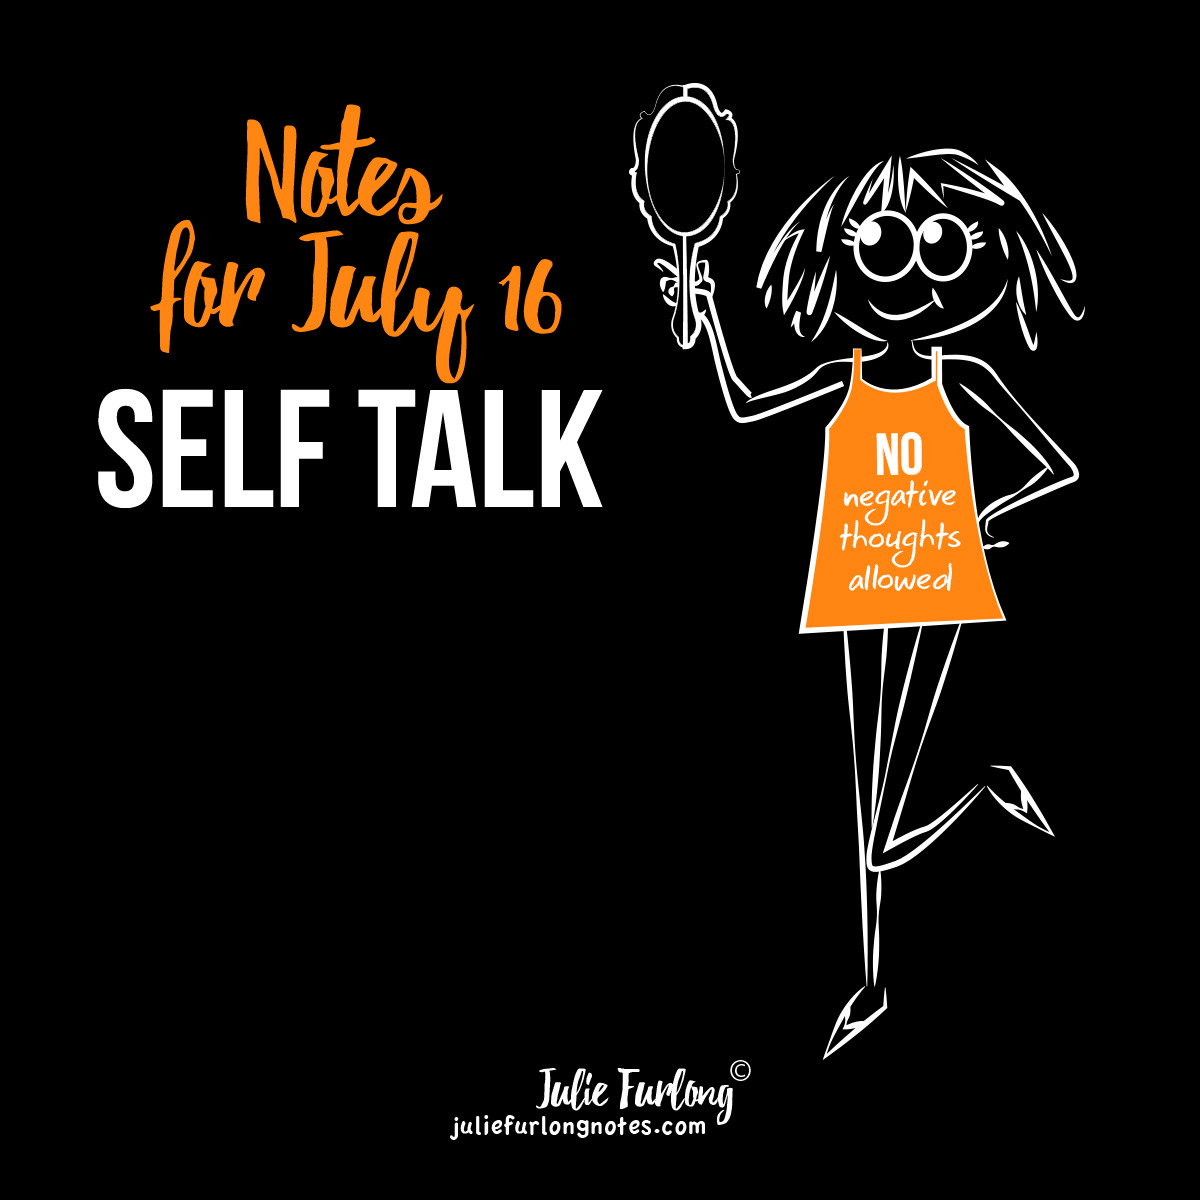 Julie-Furlong-Notes-Self Talk